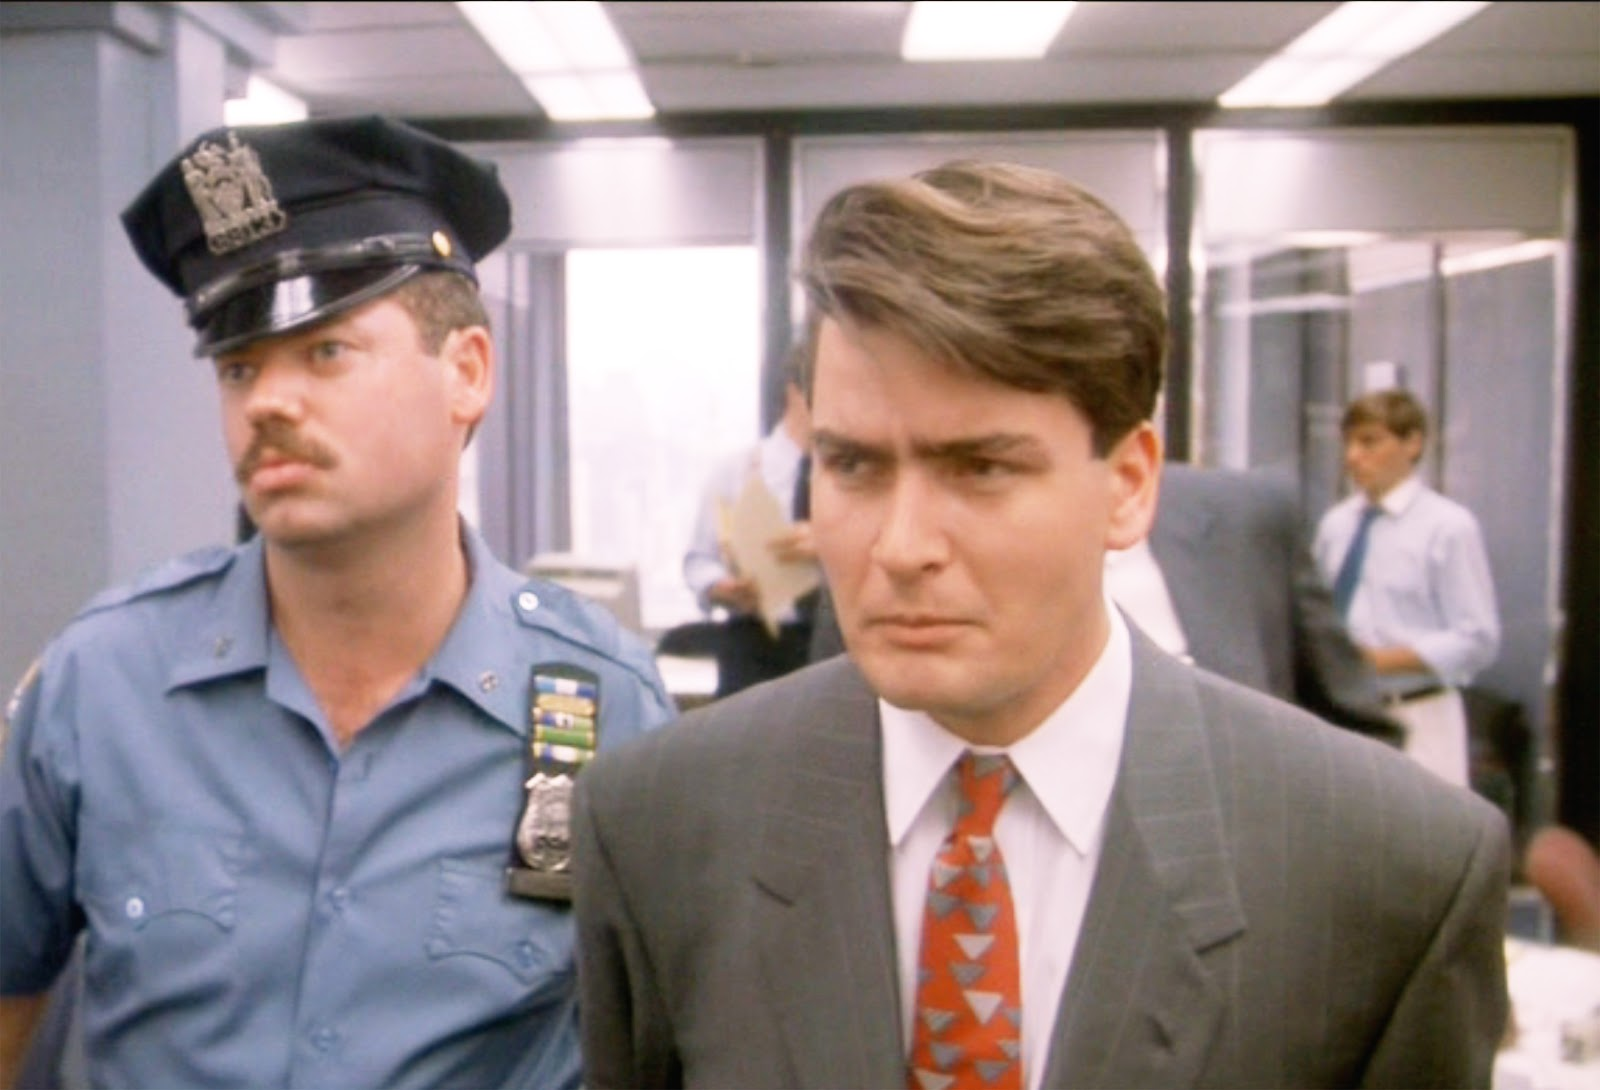 insider trading and the movie wallstreet Here's a look back at some of the best wall street movies ever made inside trading and shady deals abound the washington post and business insider.